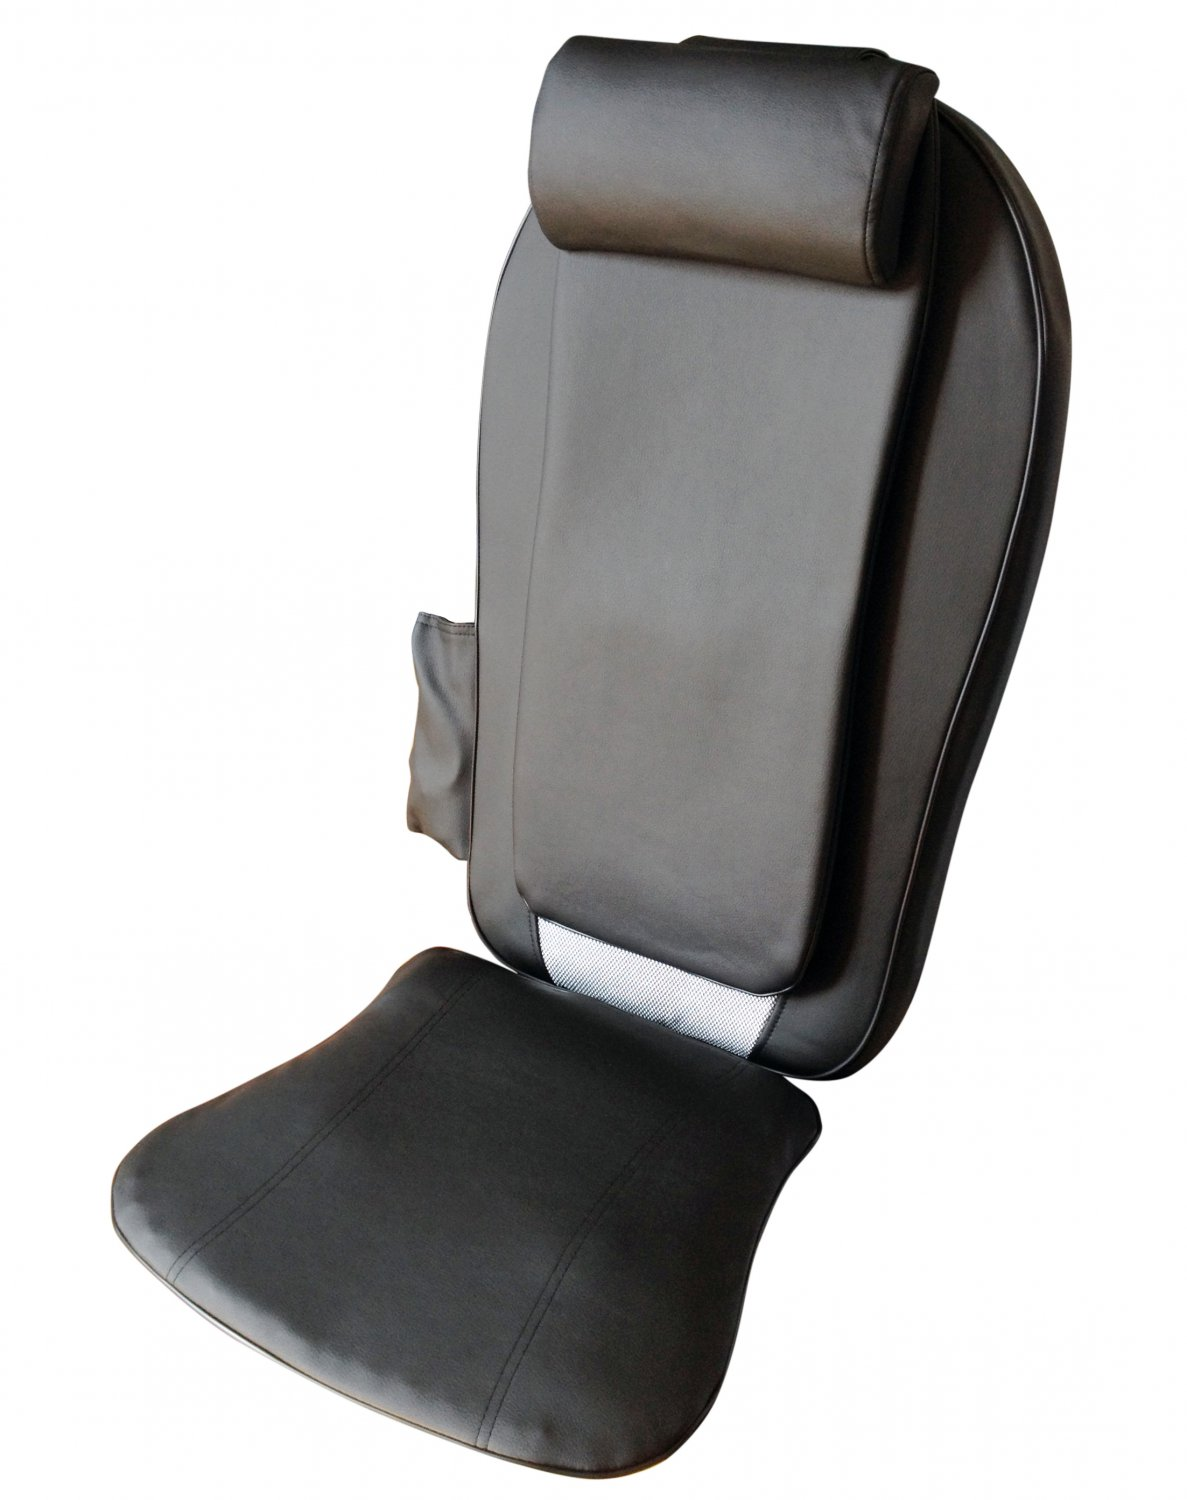 Carepeutic Deluxe Hand-Touch Swedish Shiatsu and Swing Back Massager